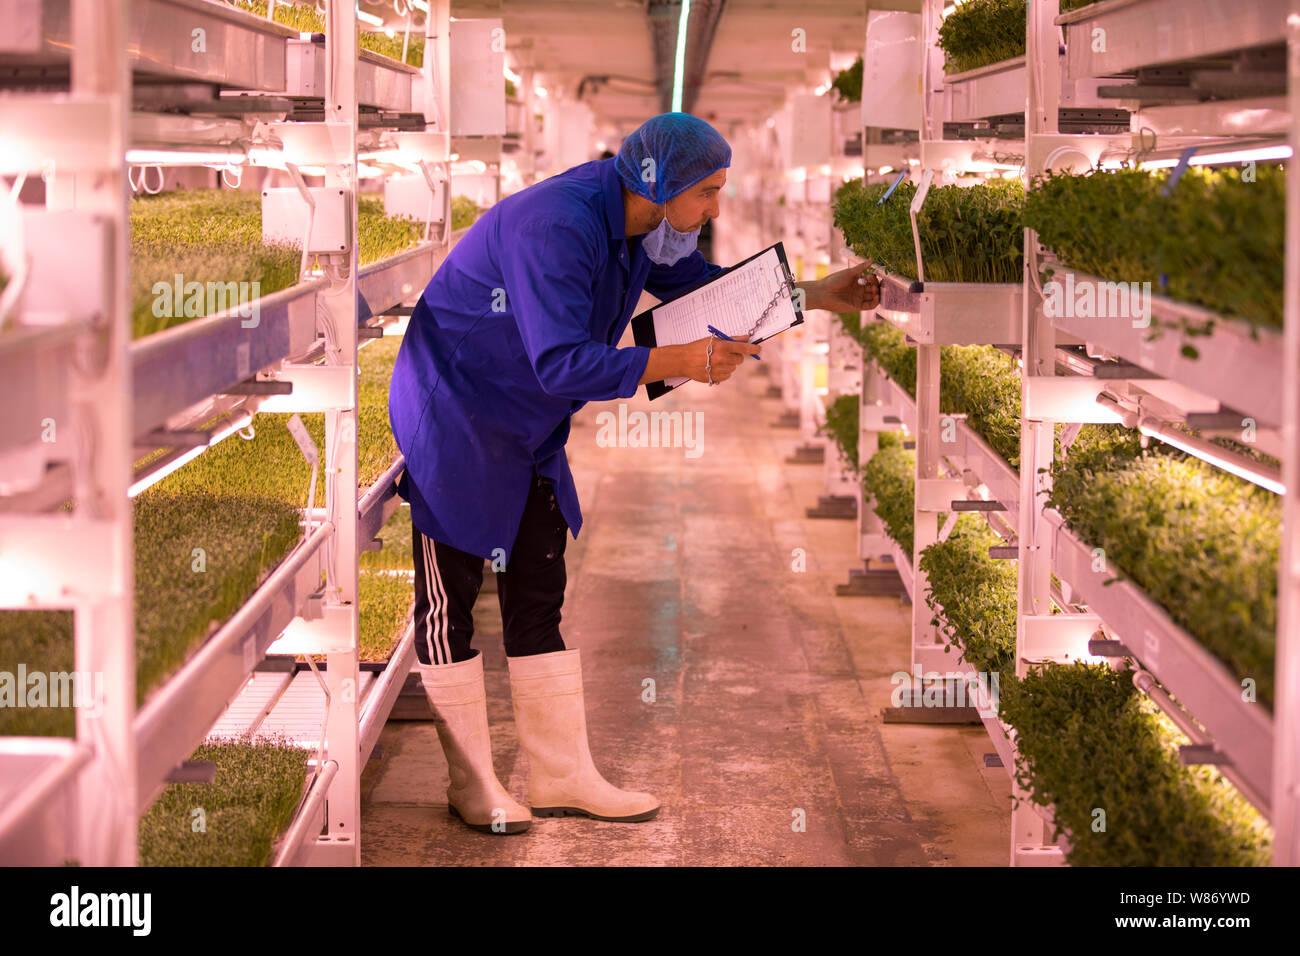 Growing Underground's vertical farm 100 feet below ground in Clapham, south London, built in former air raid shelters, England, United Kingdom Stock Photo